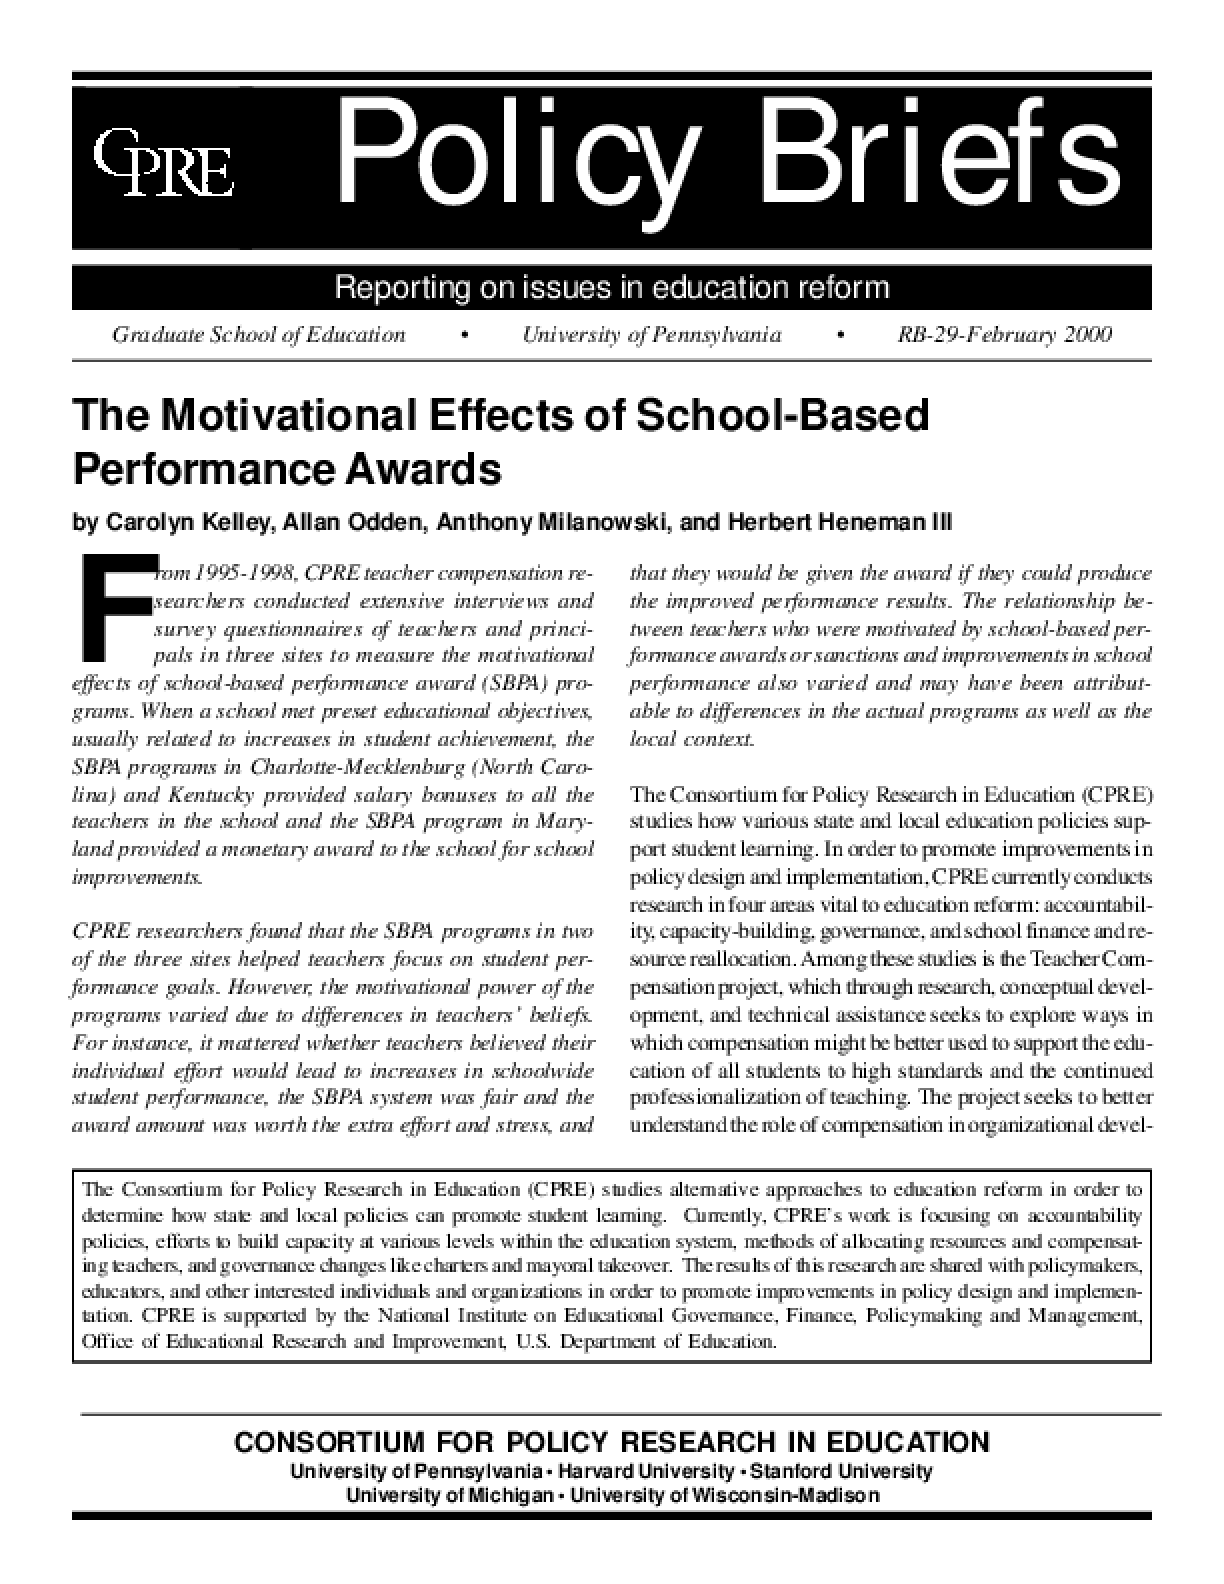 The Motivational Effects of School-Based Performance Awards